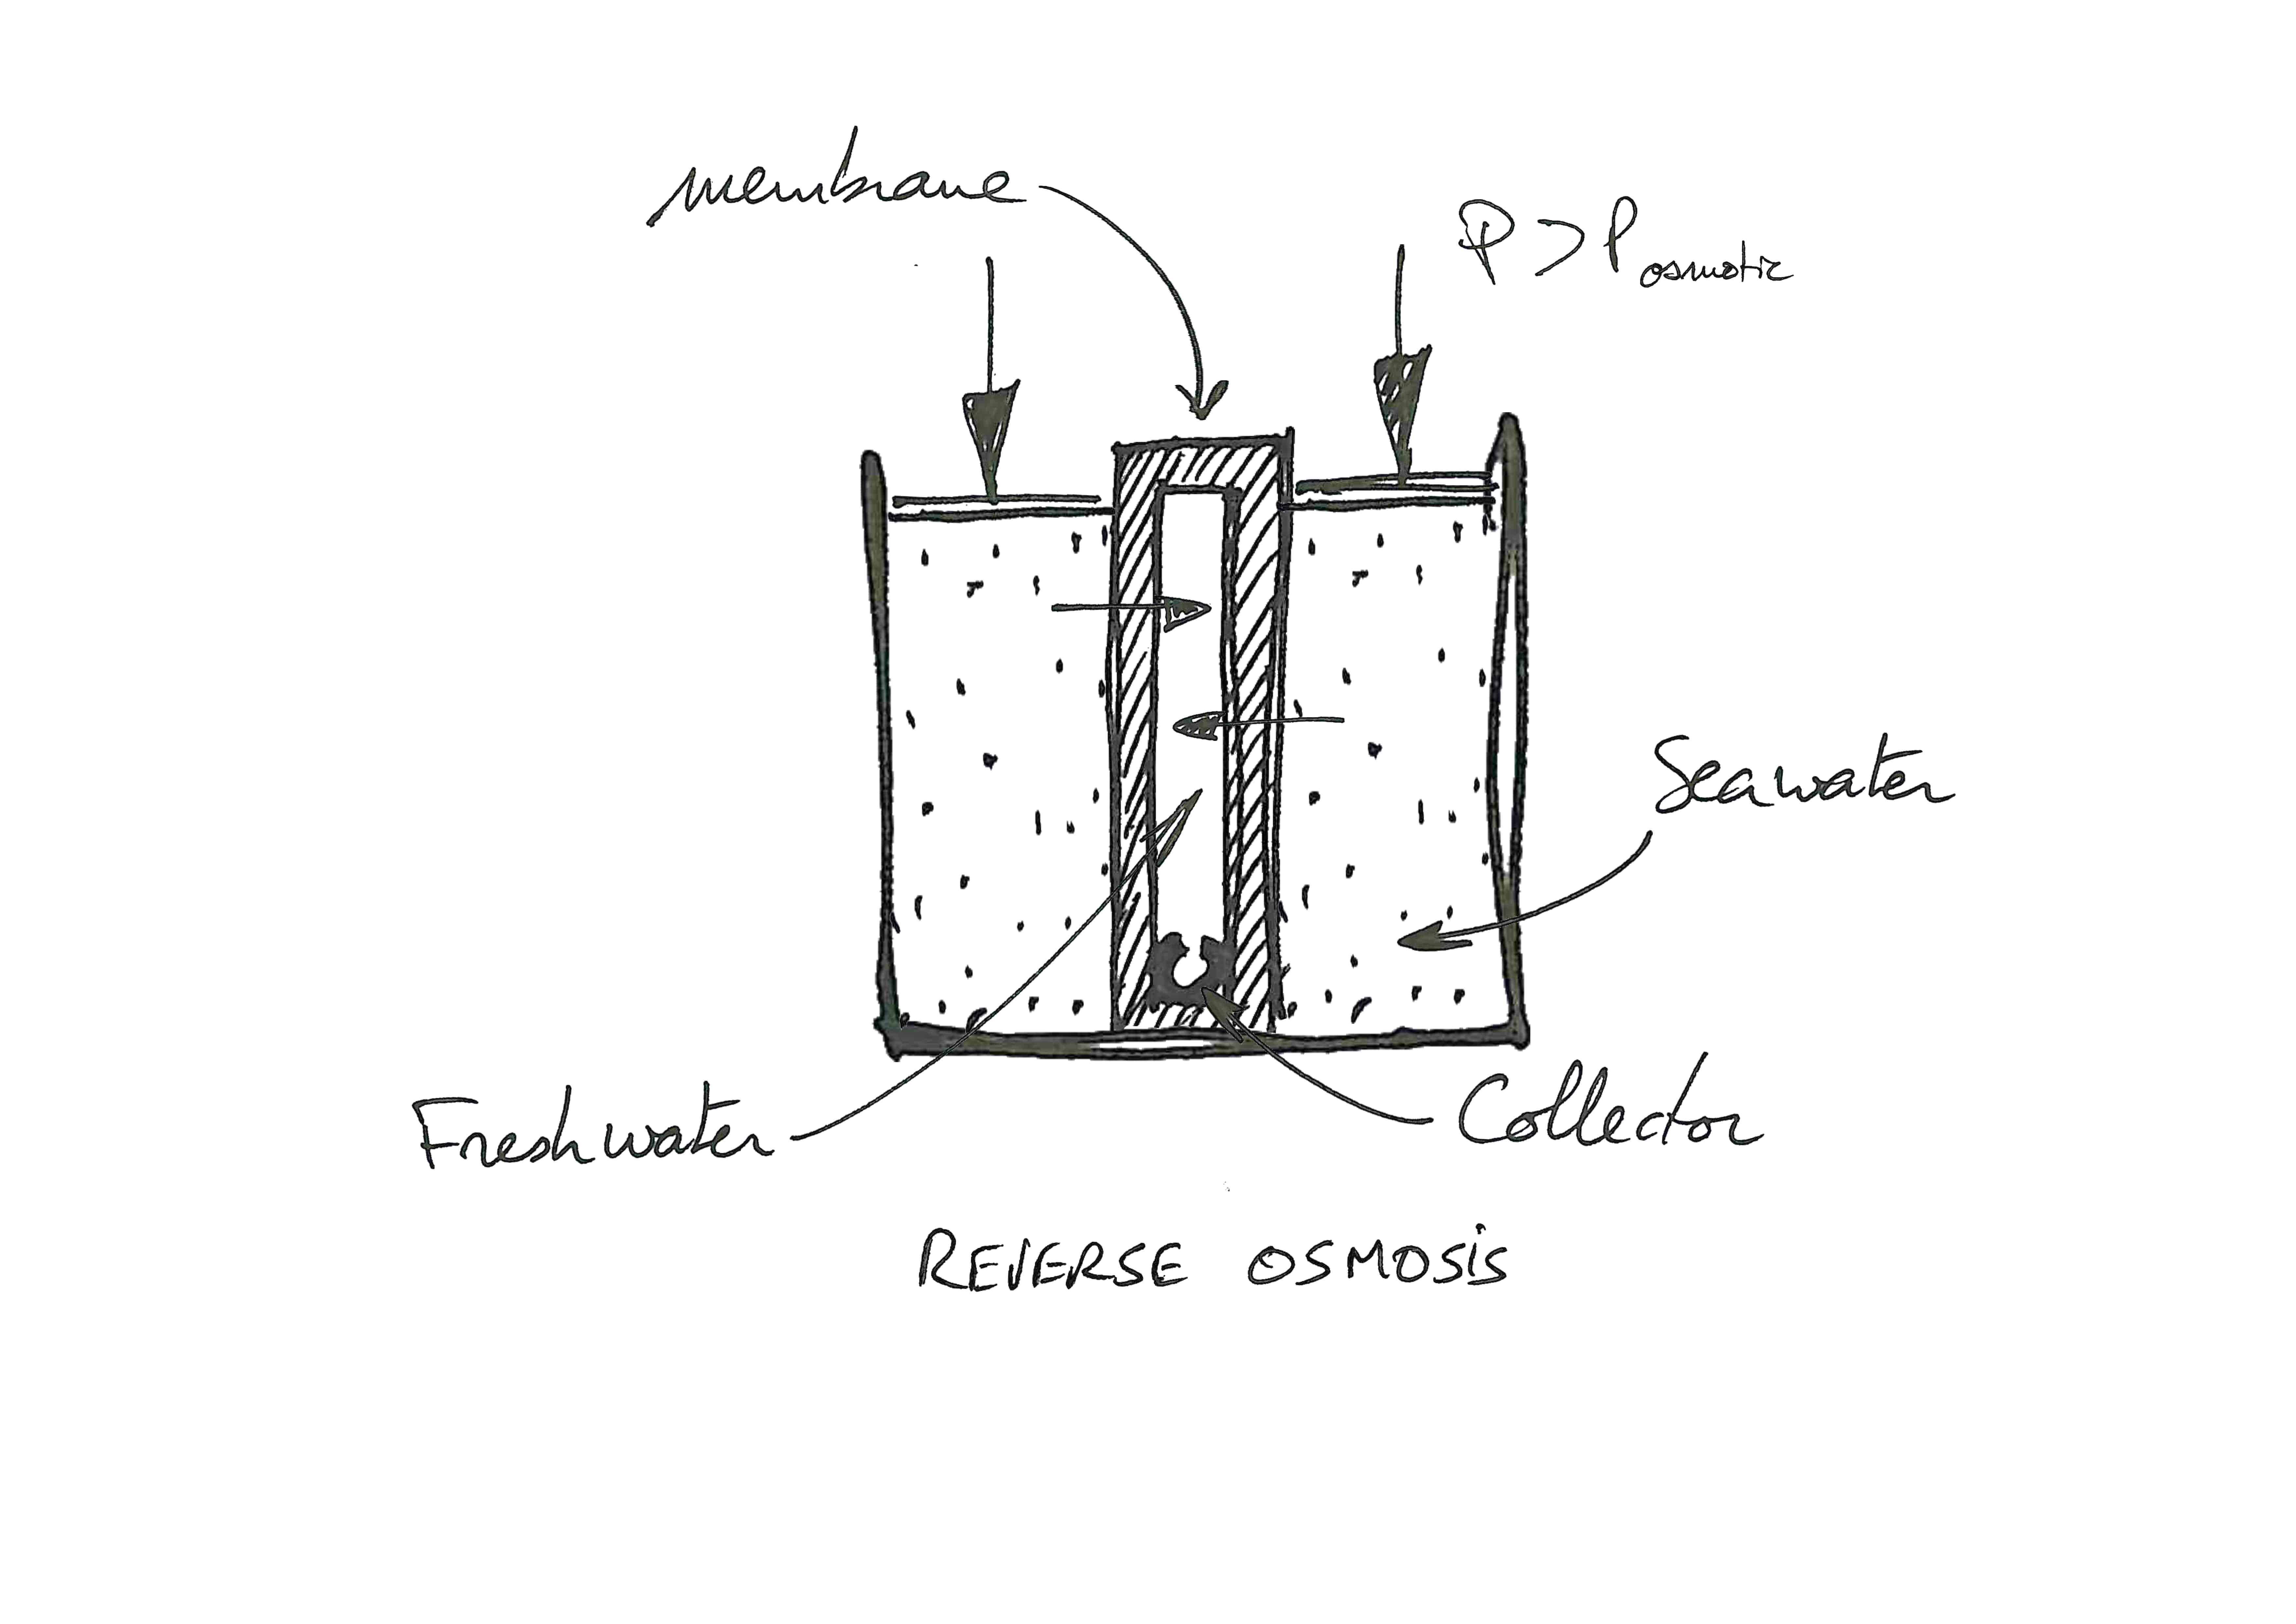 The Reverse Osmosis By Slce Watermakers